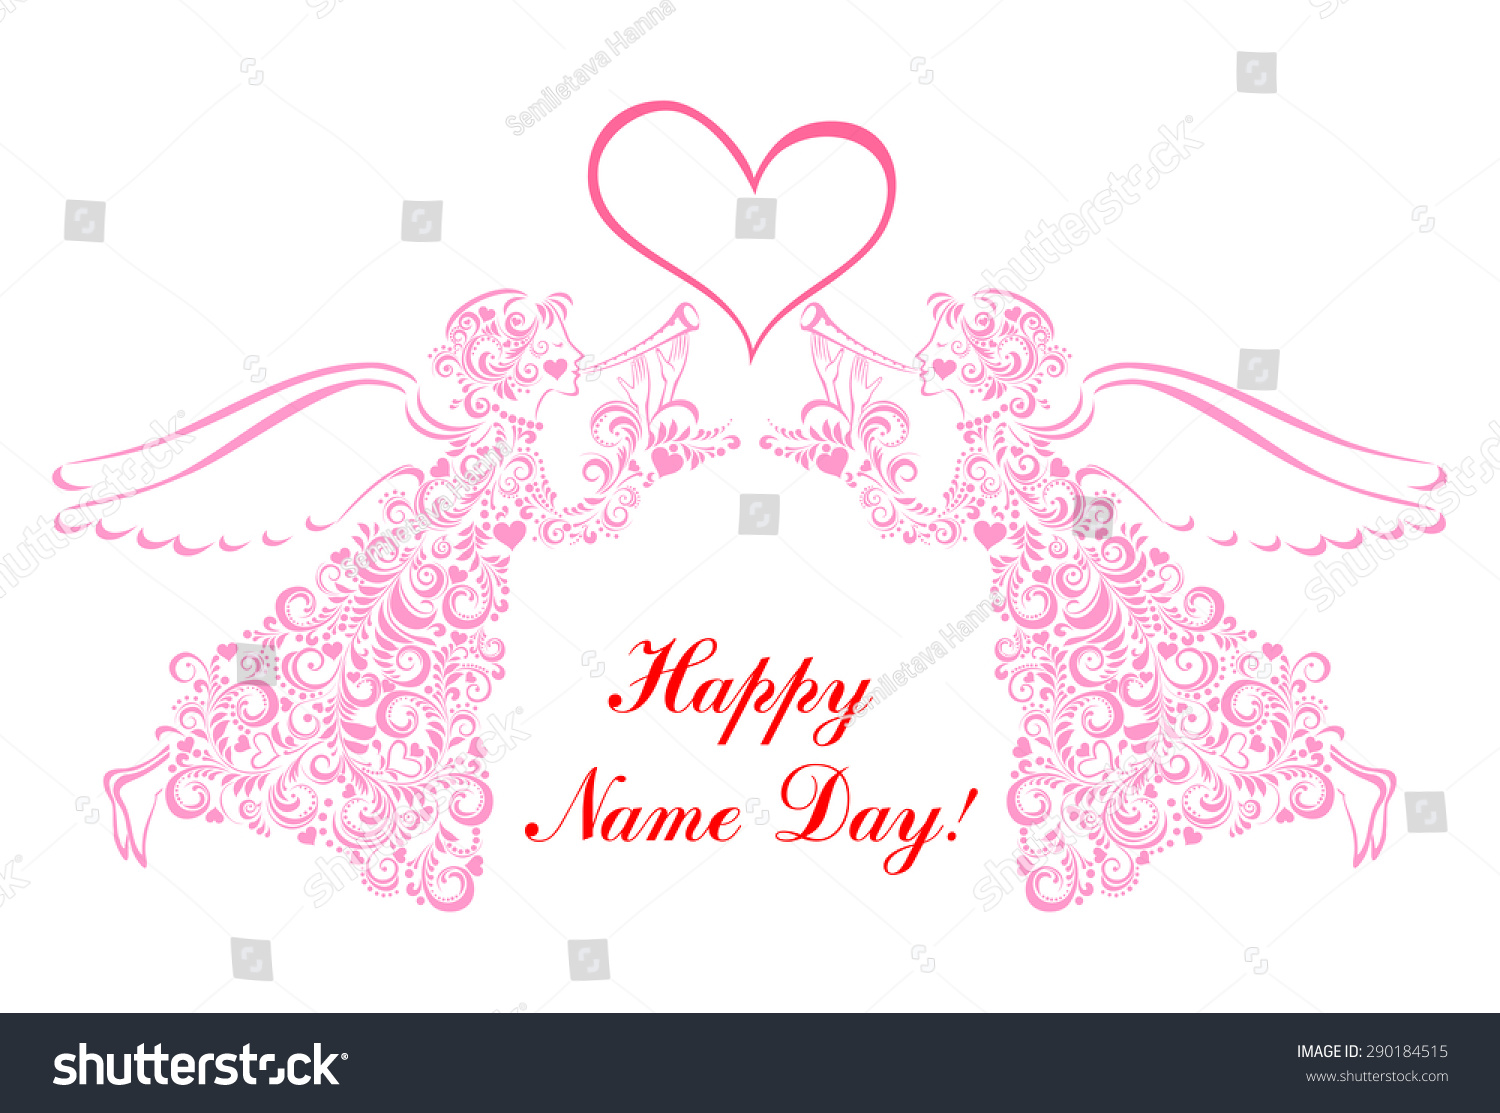 Name Day - Angel Day. Congratulations on Angel Day 88